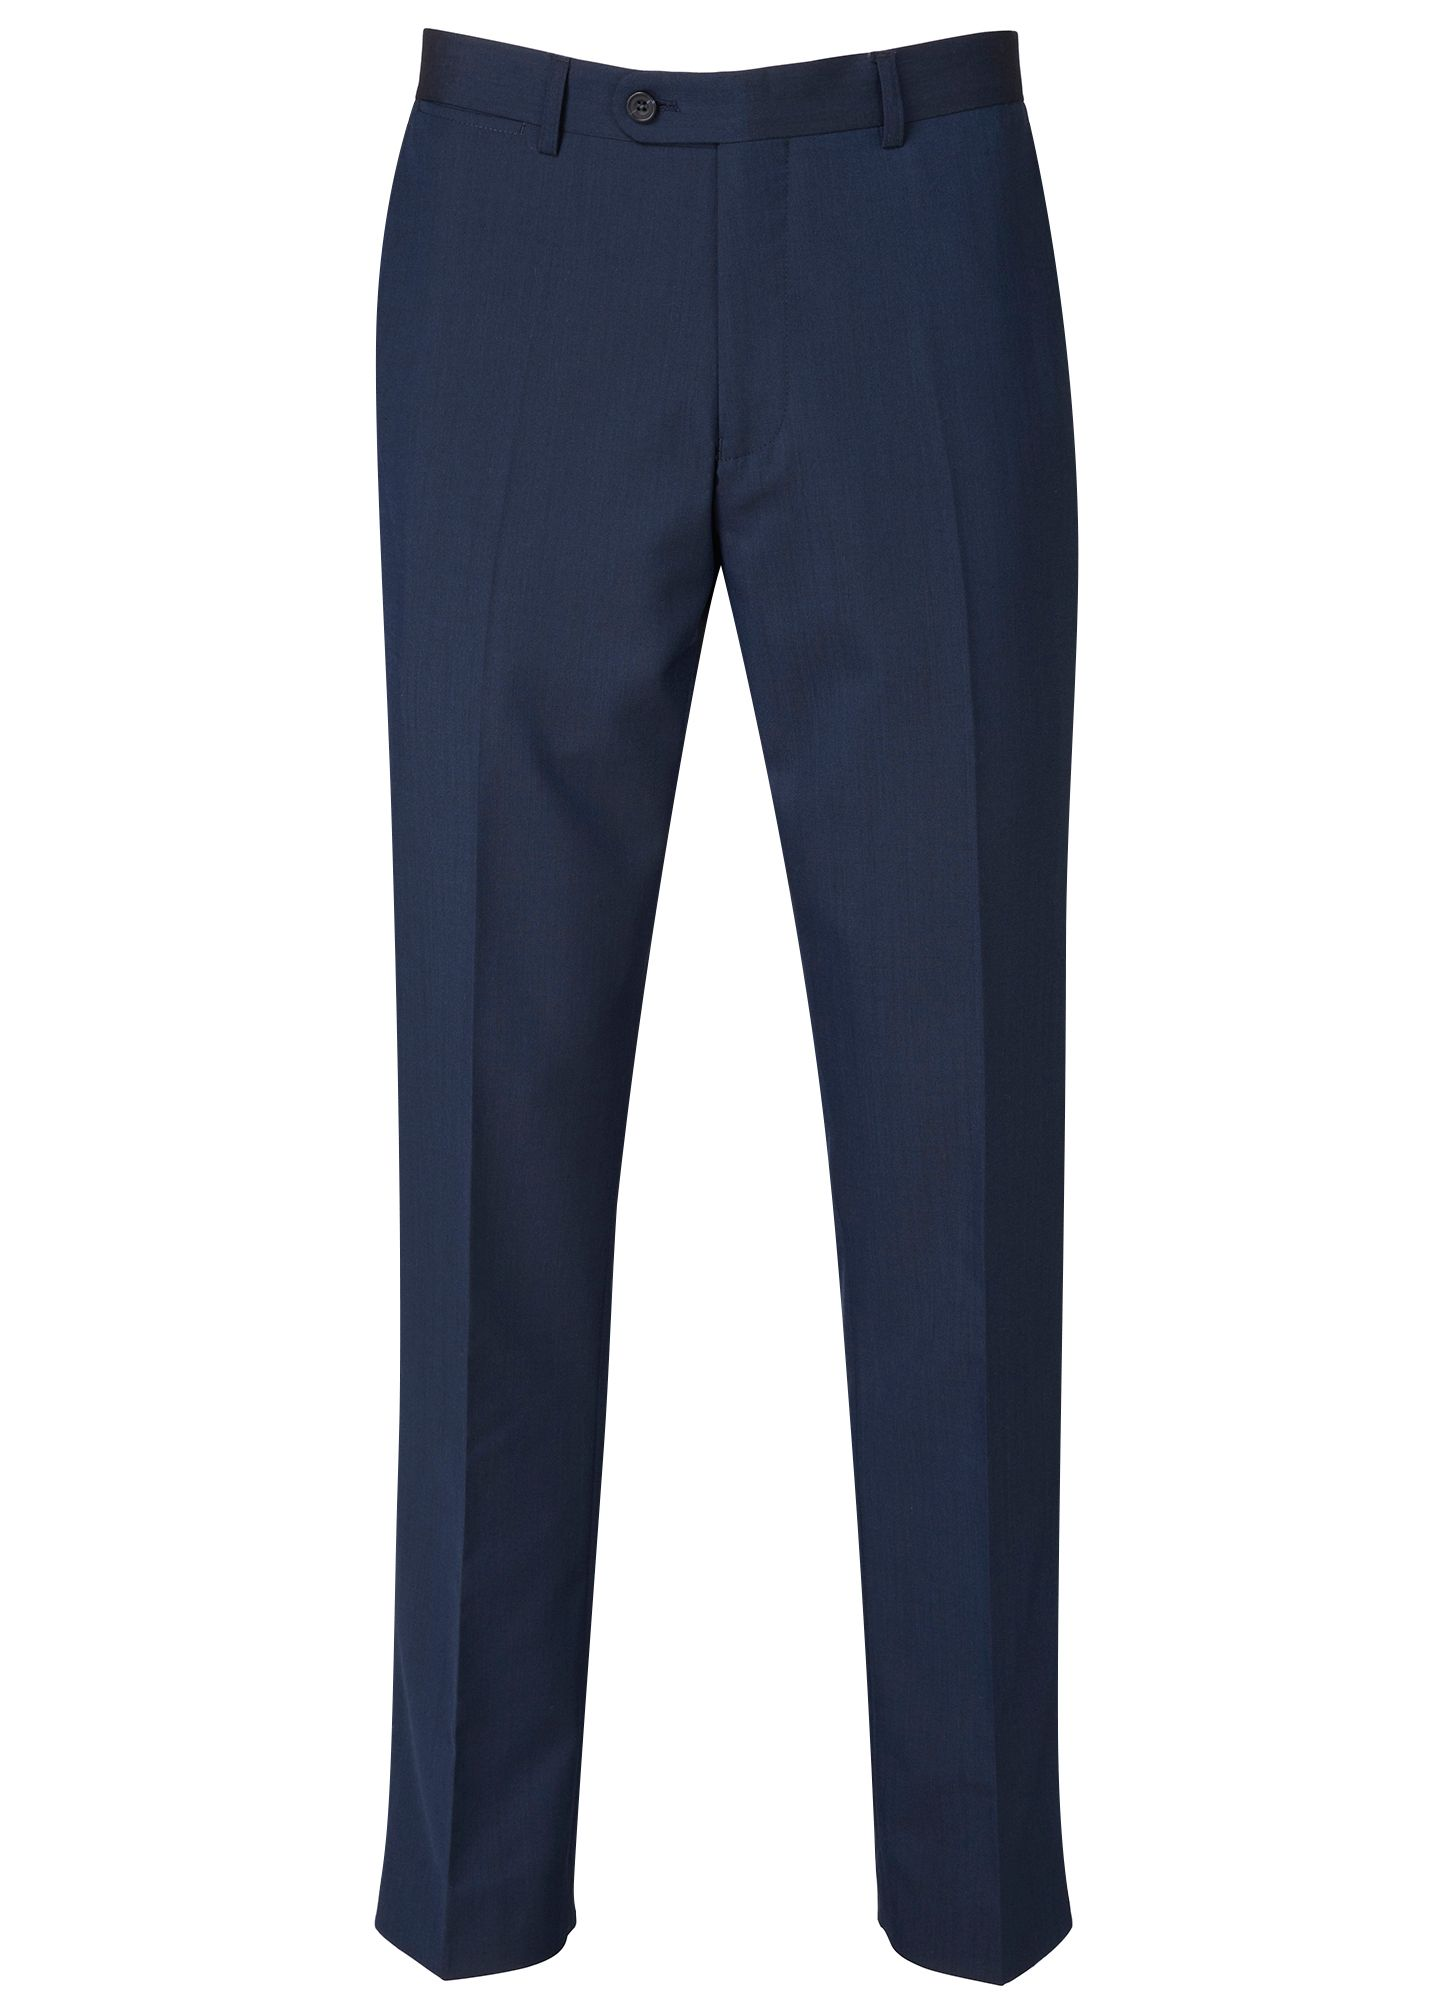 Egan suit trousers